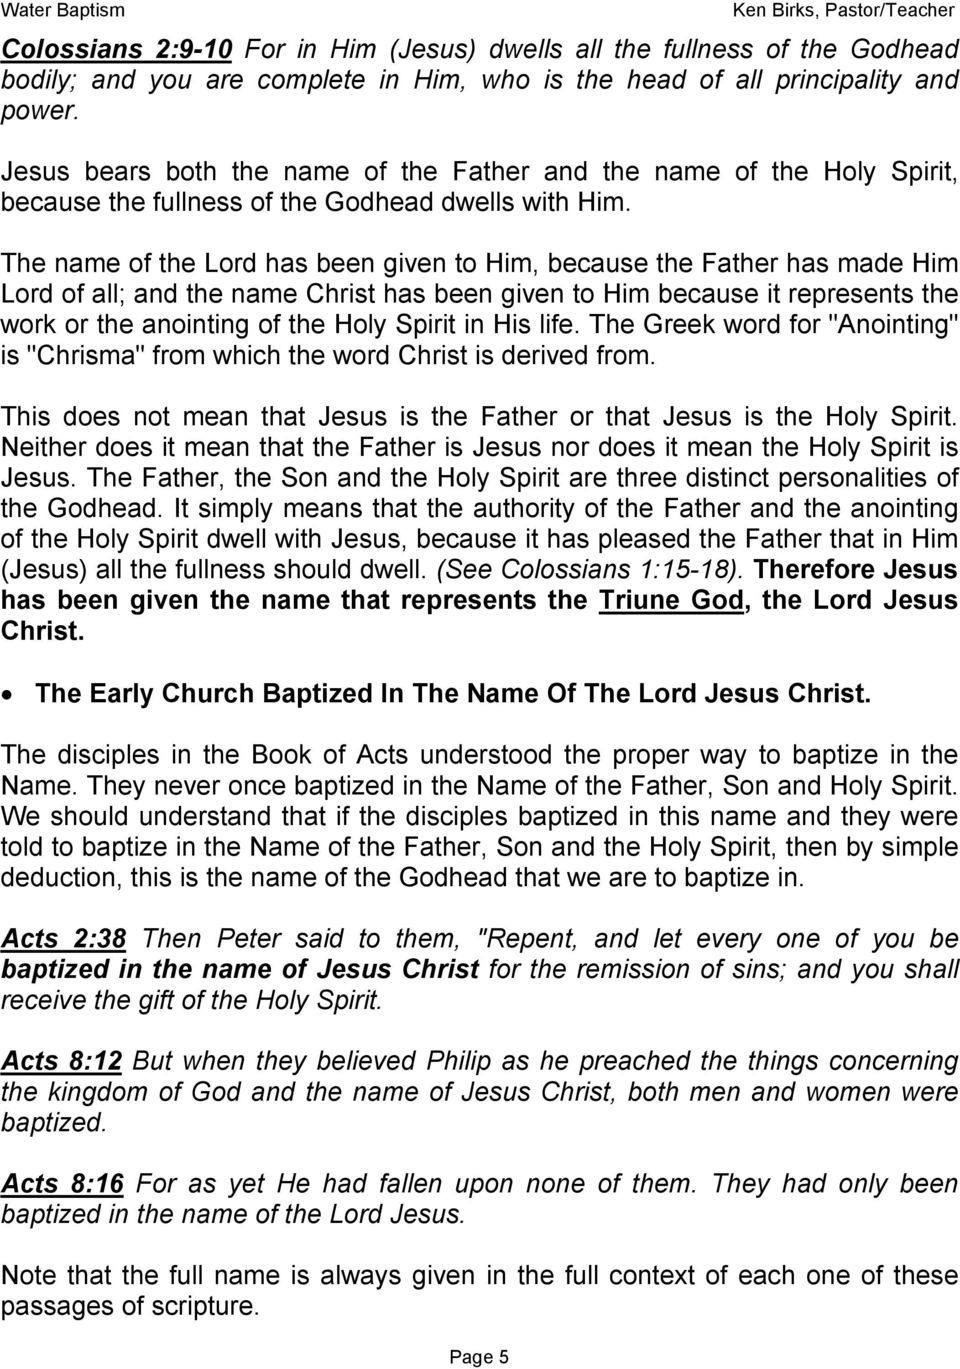 The name of the Lord has been given to Him, because the Father has made Him Lord of all; and the name Christ has been given to Him because it represents the work or the anointing of the Holy Spirit